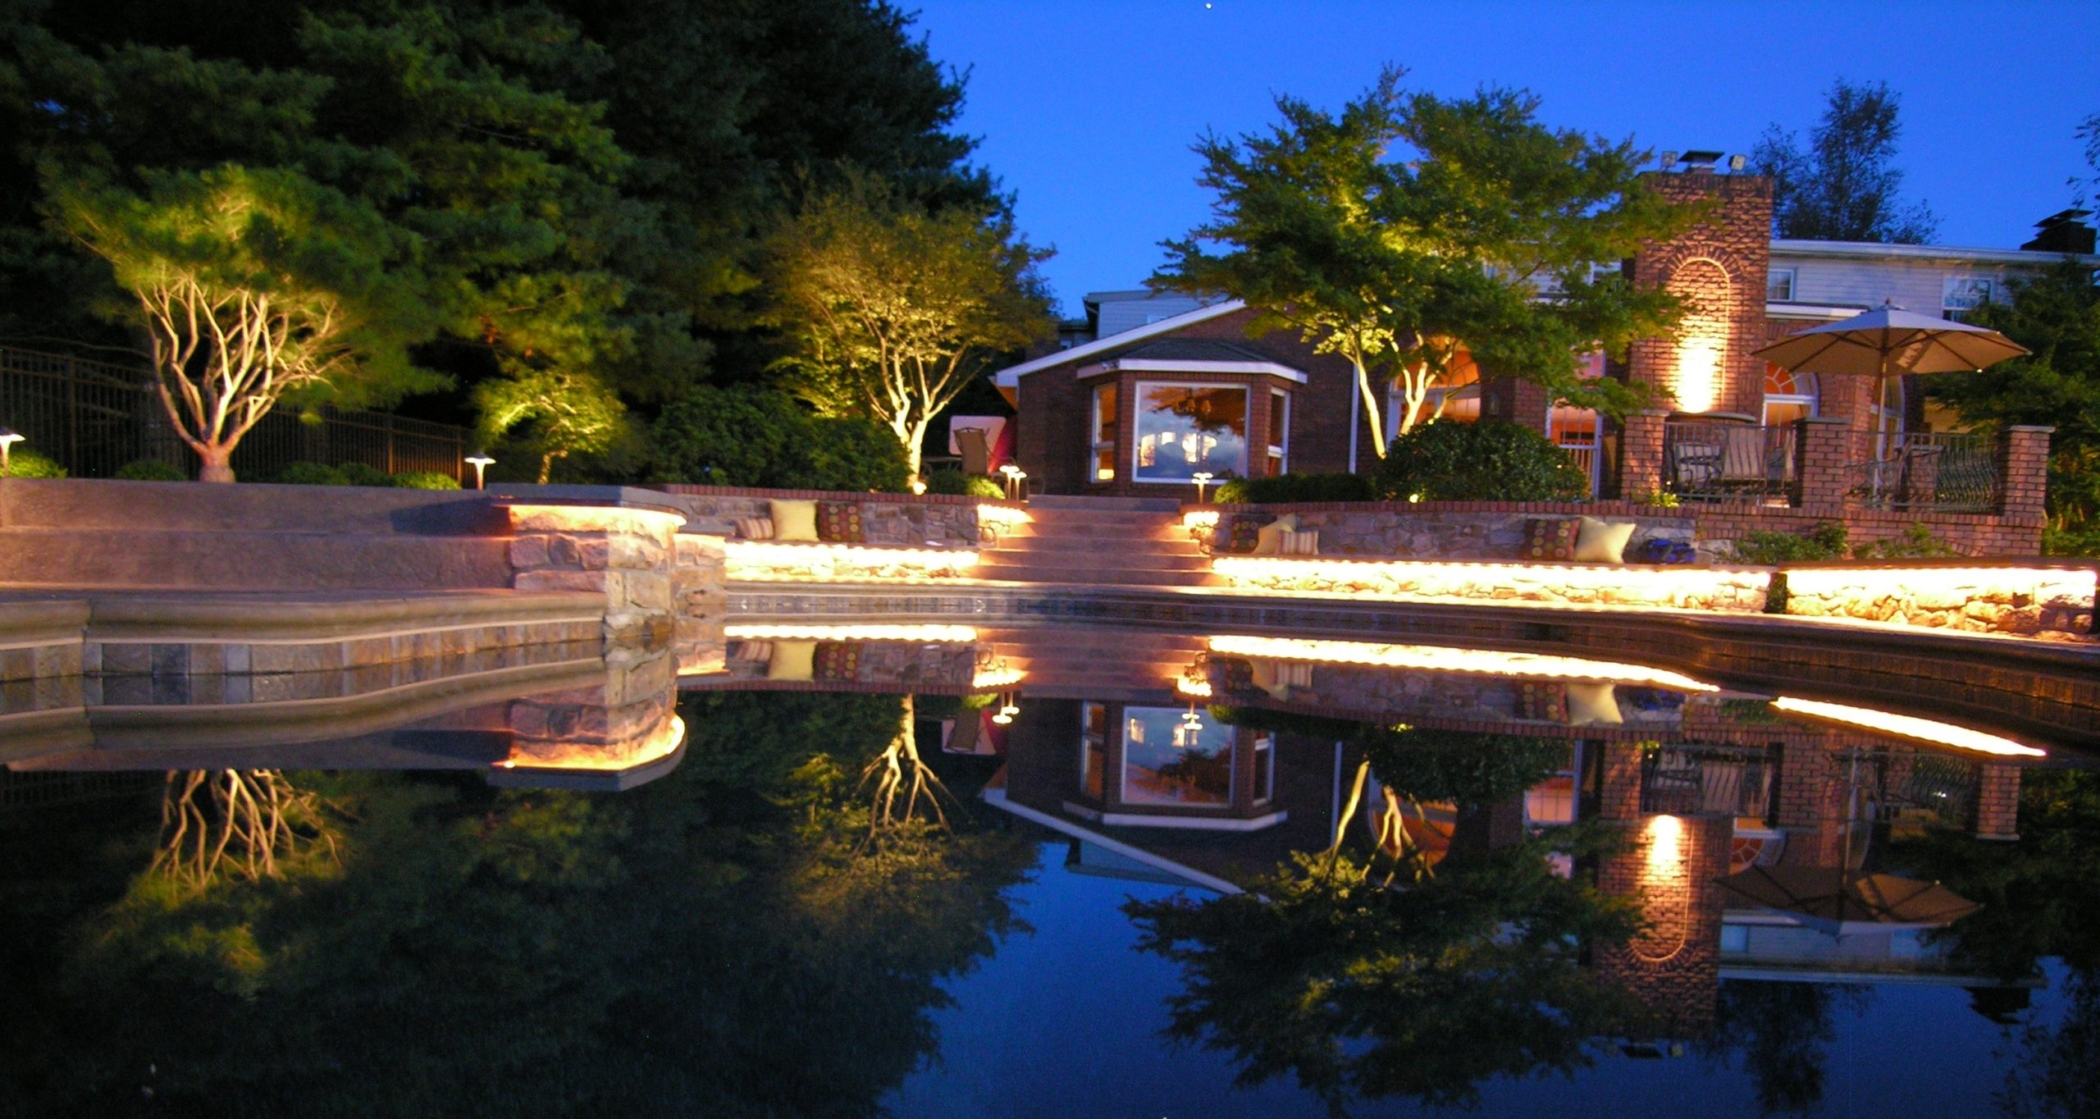 Experience a new garden view in the evening with landscape lighting, Lancaster, PA